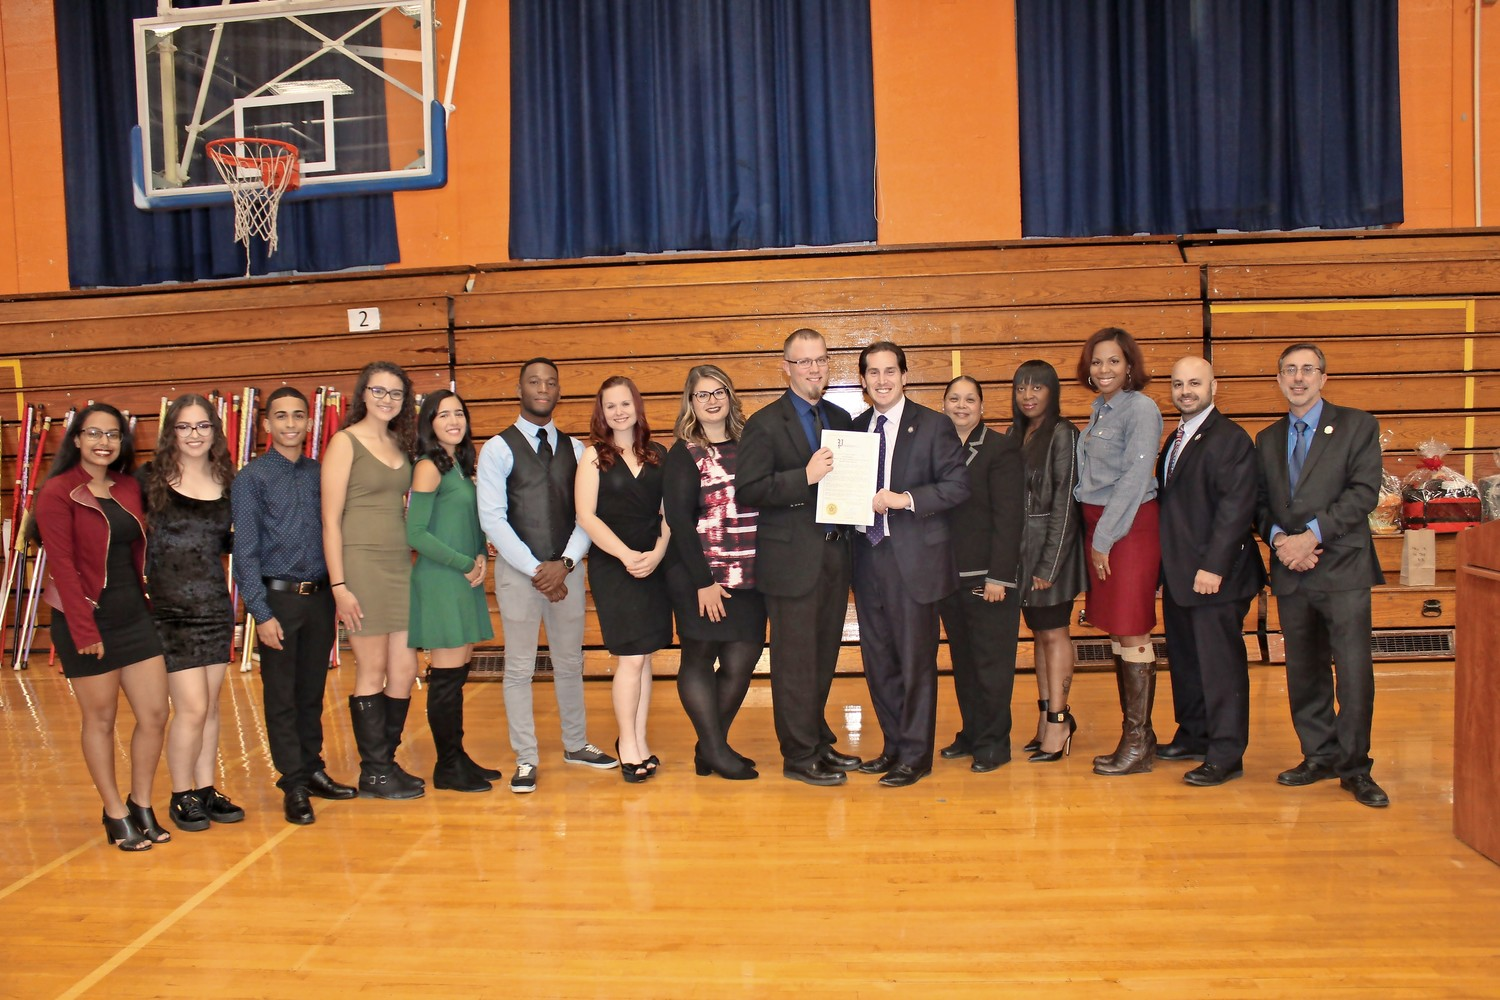 The Malverne High School band celebrated its recent success in state competition. State Sen. Todd Kaminsky, sixth from right, presented a citation to band director Glen Johnson.